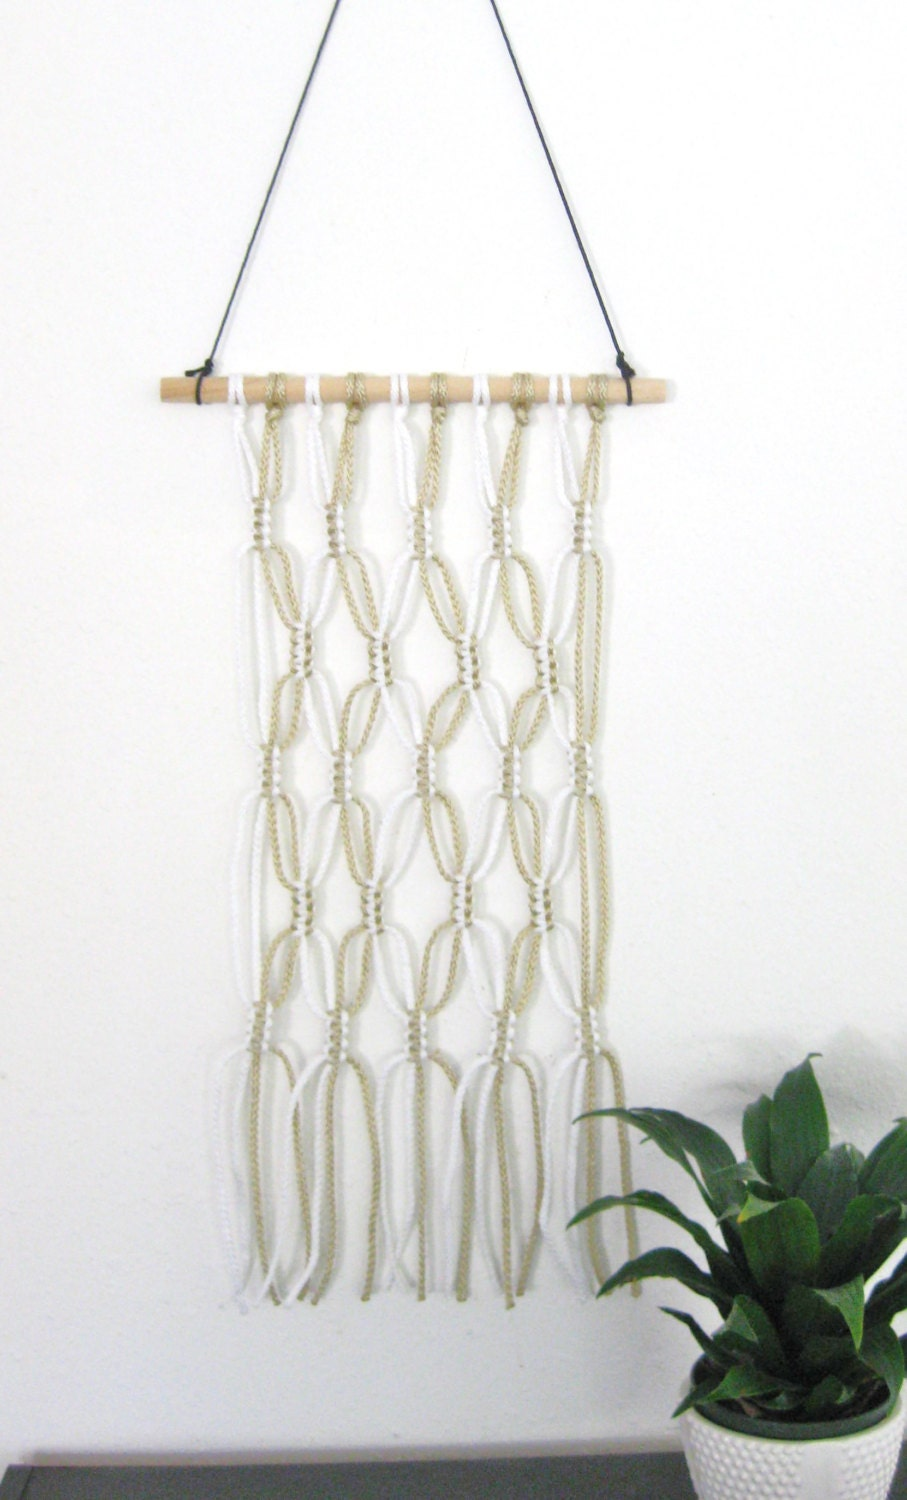 Macrame wall hanging minimalist decor wall art home for Minimalist wall art